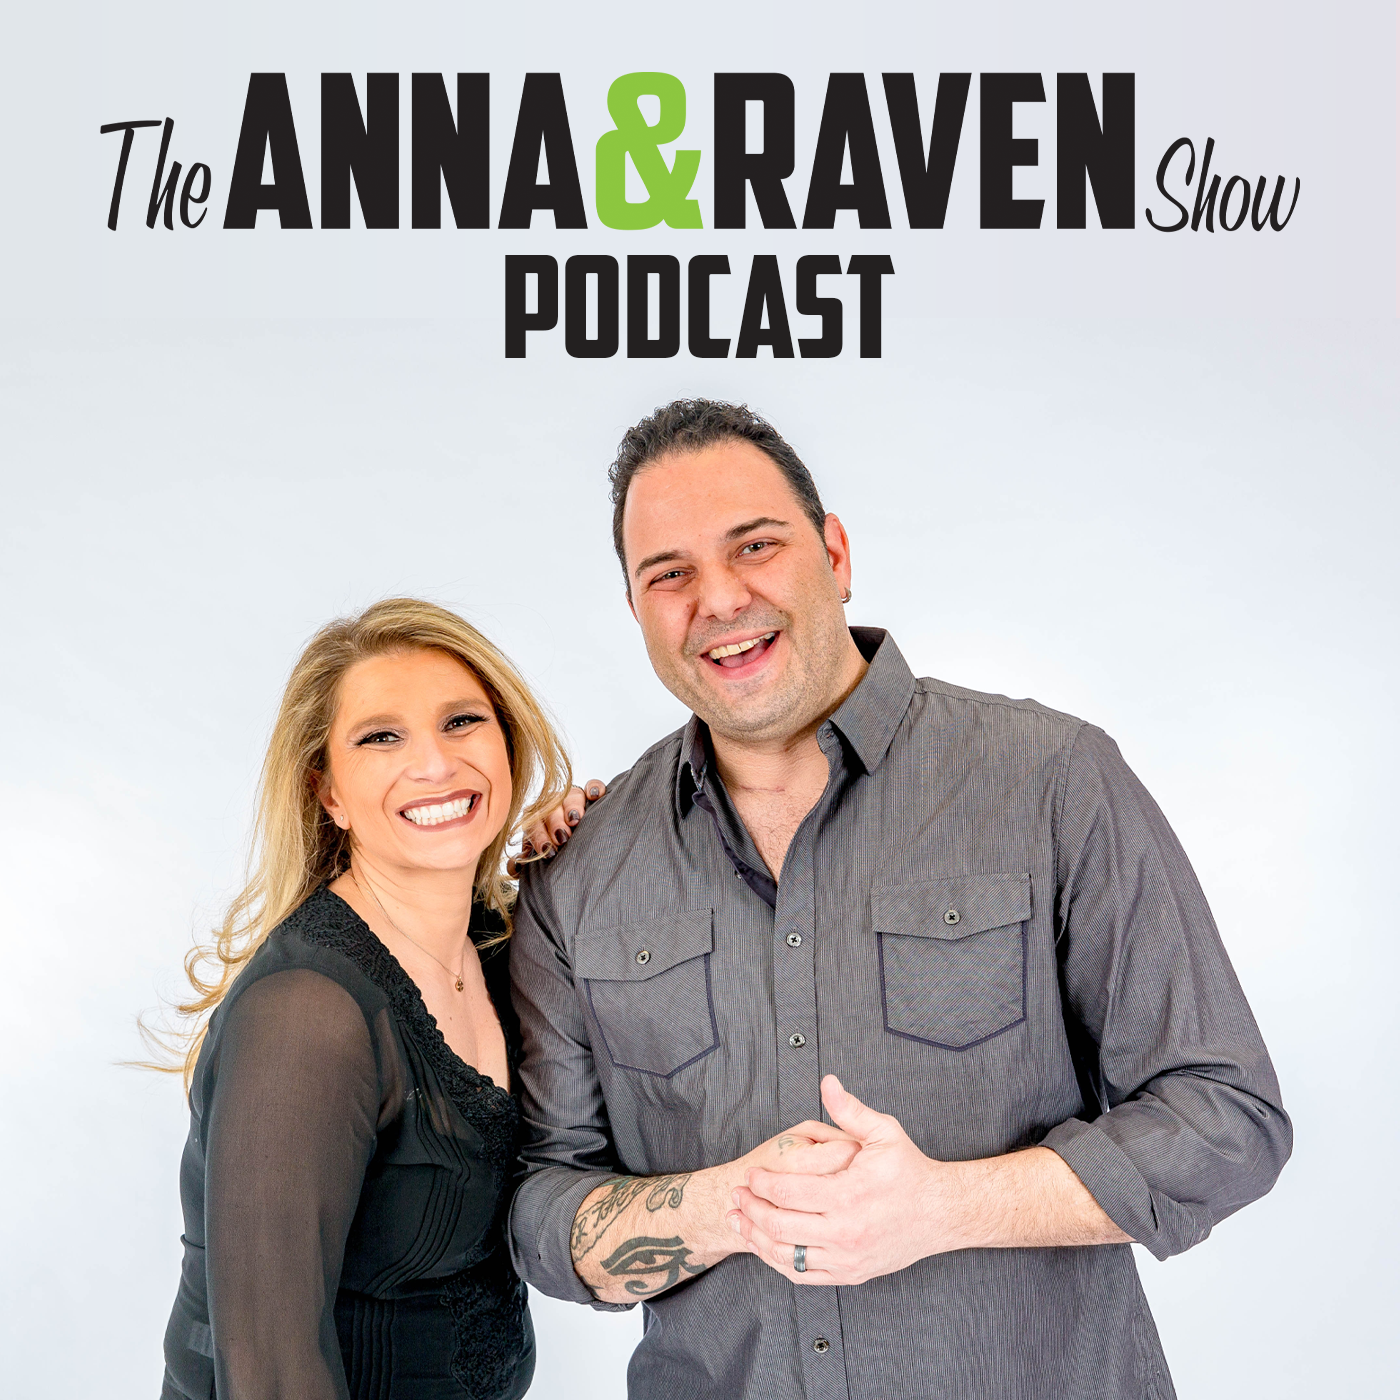 The Anna & Raven Show Podcast